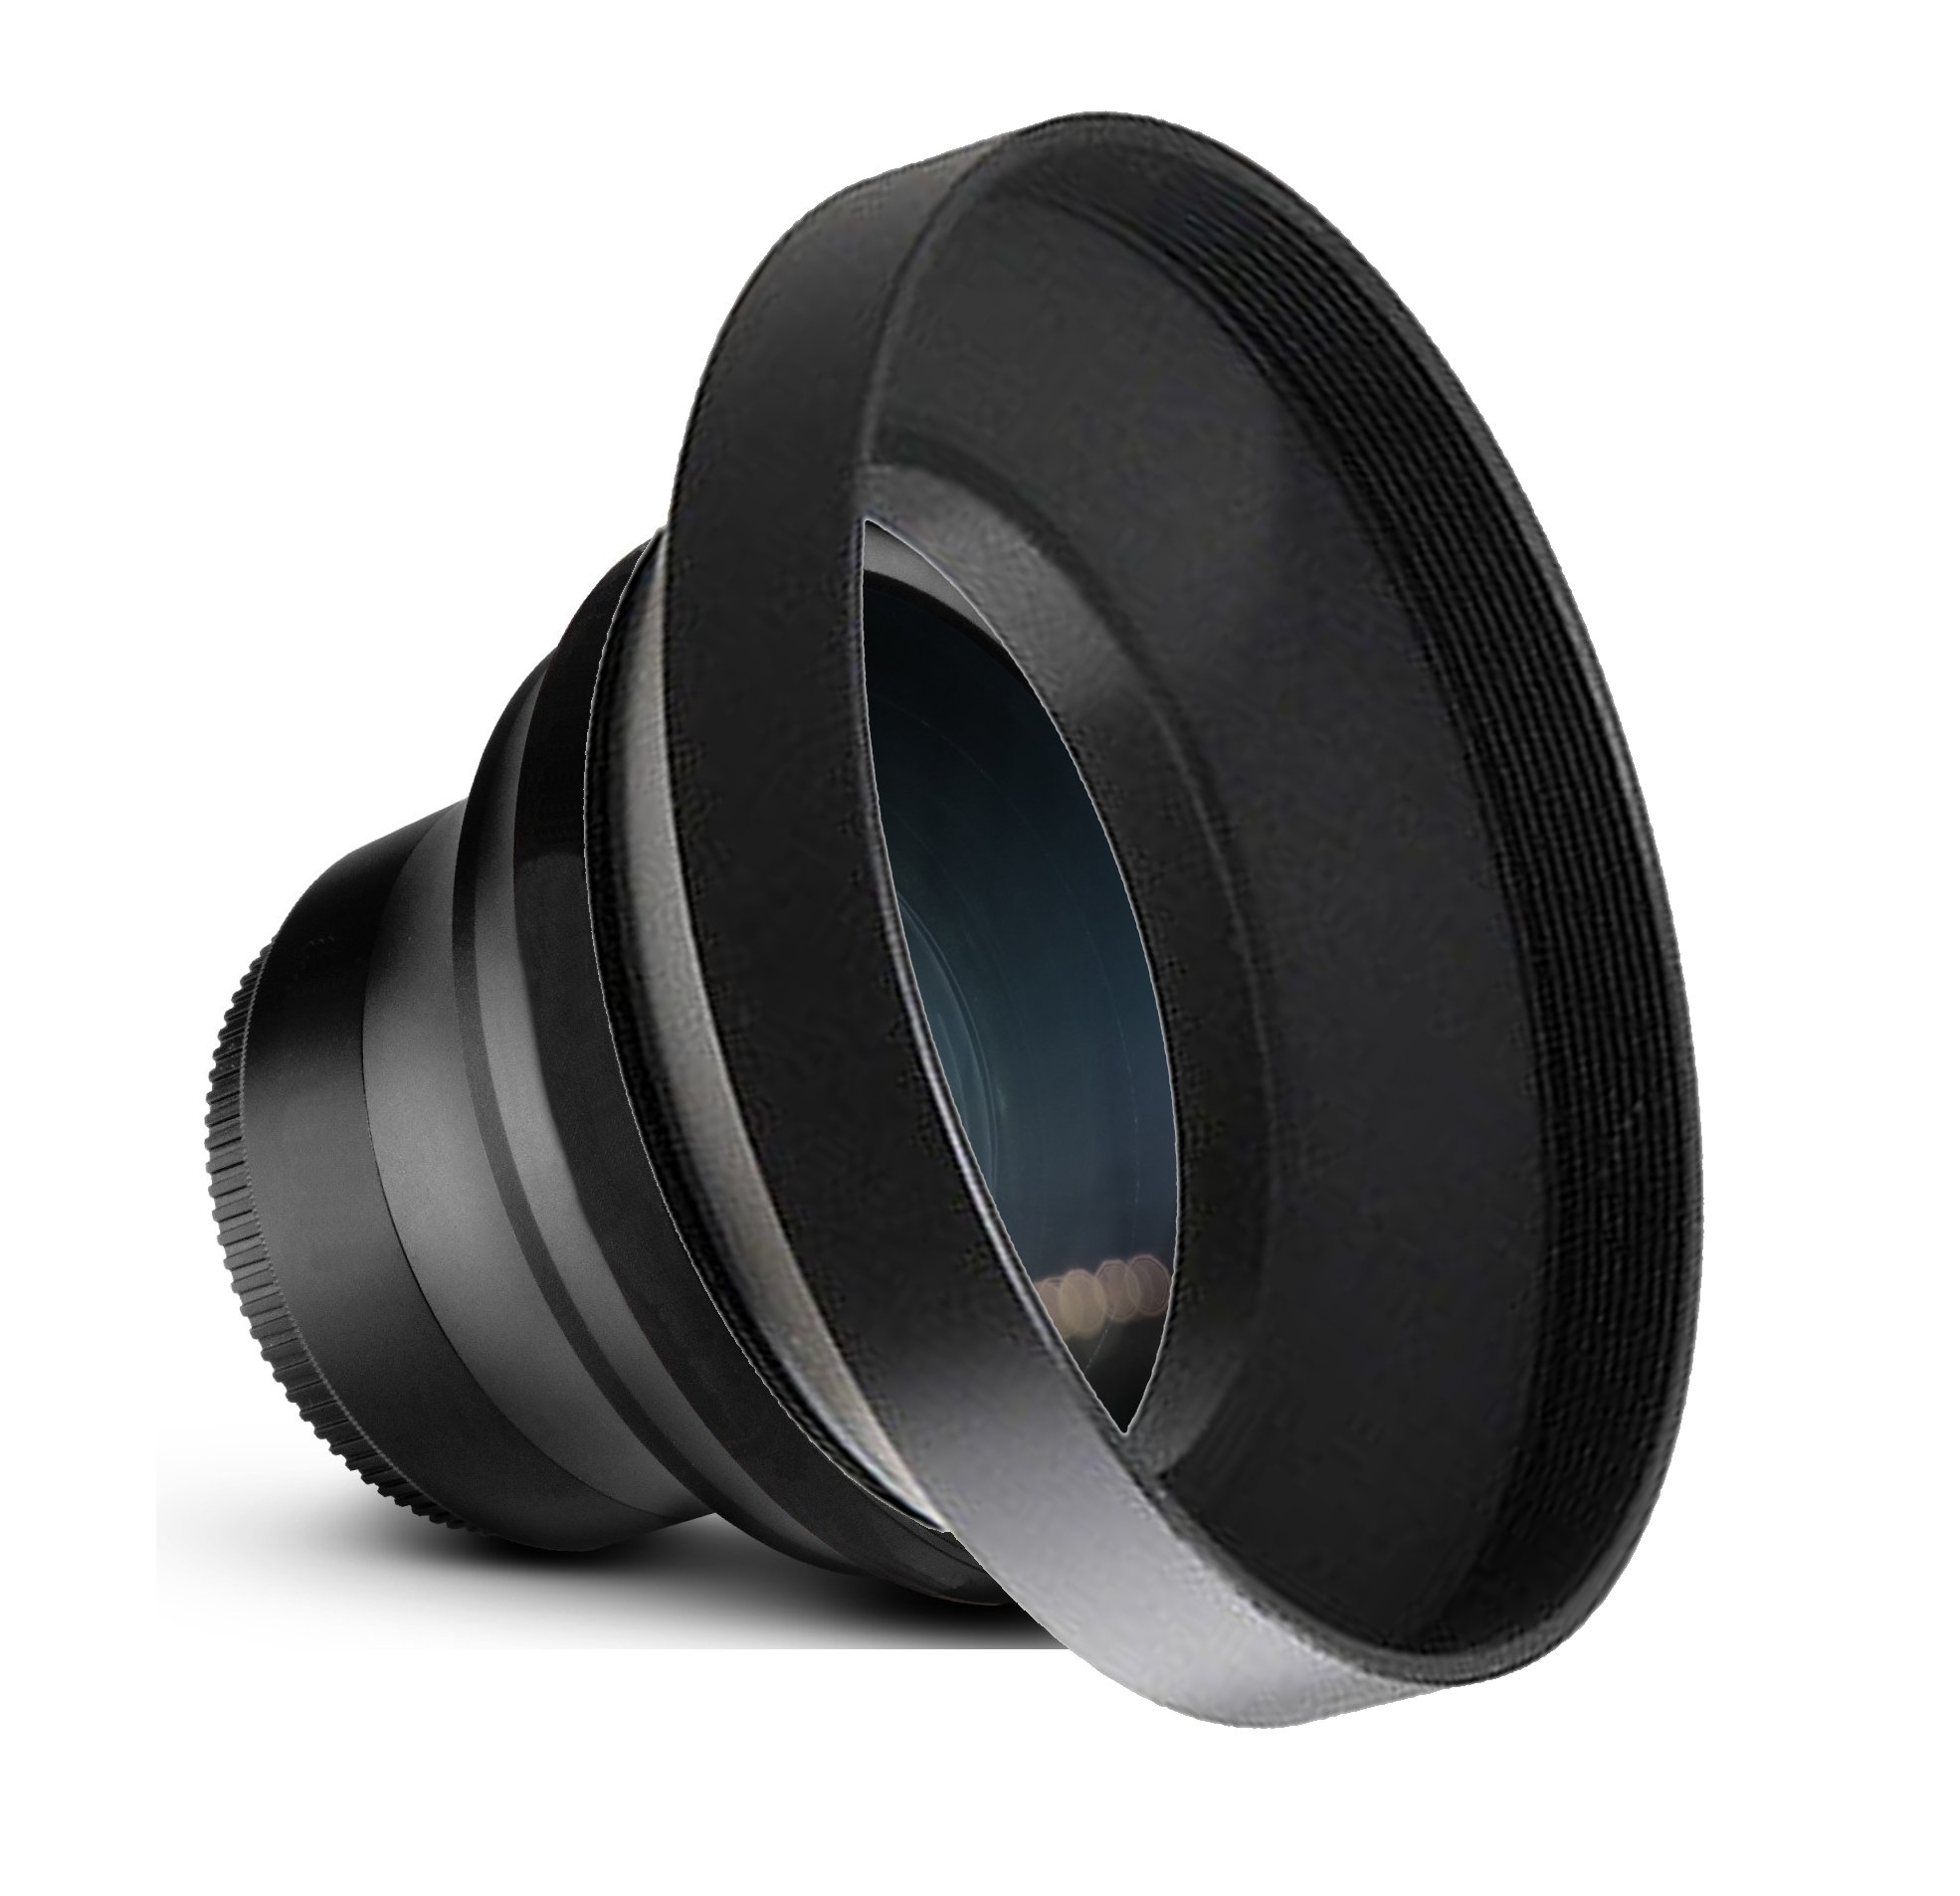 0.43x High Definition Wide Angle Conversion Lens for Canon XA30 by Digital Nc